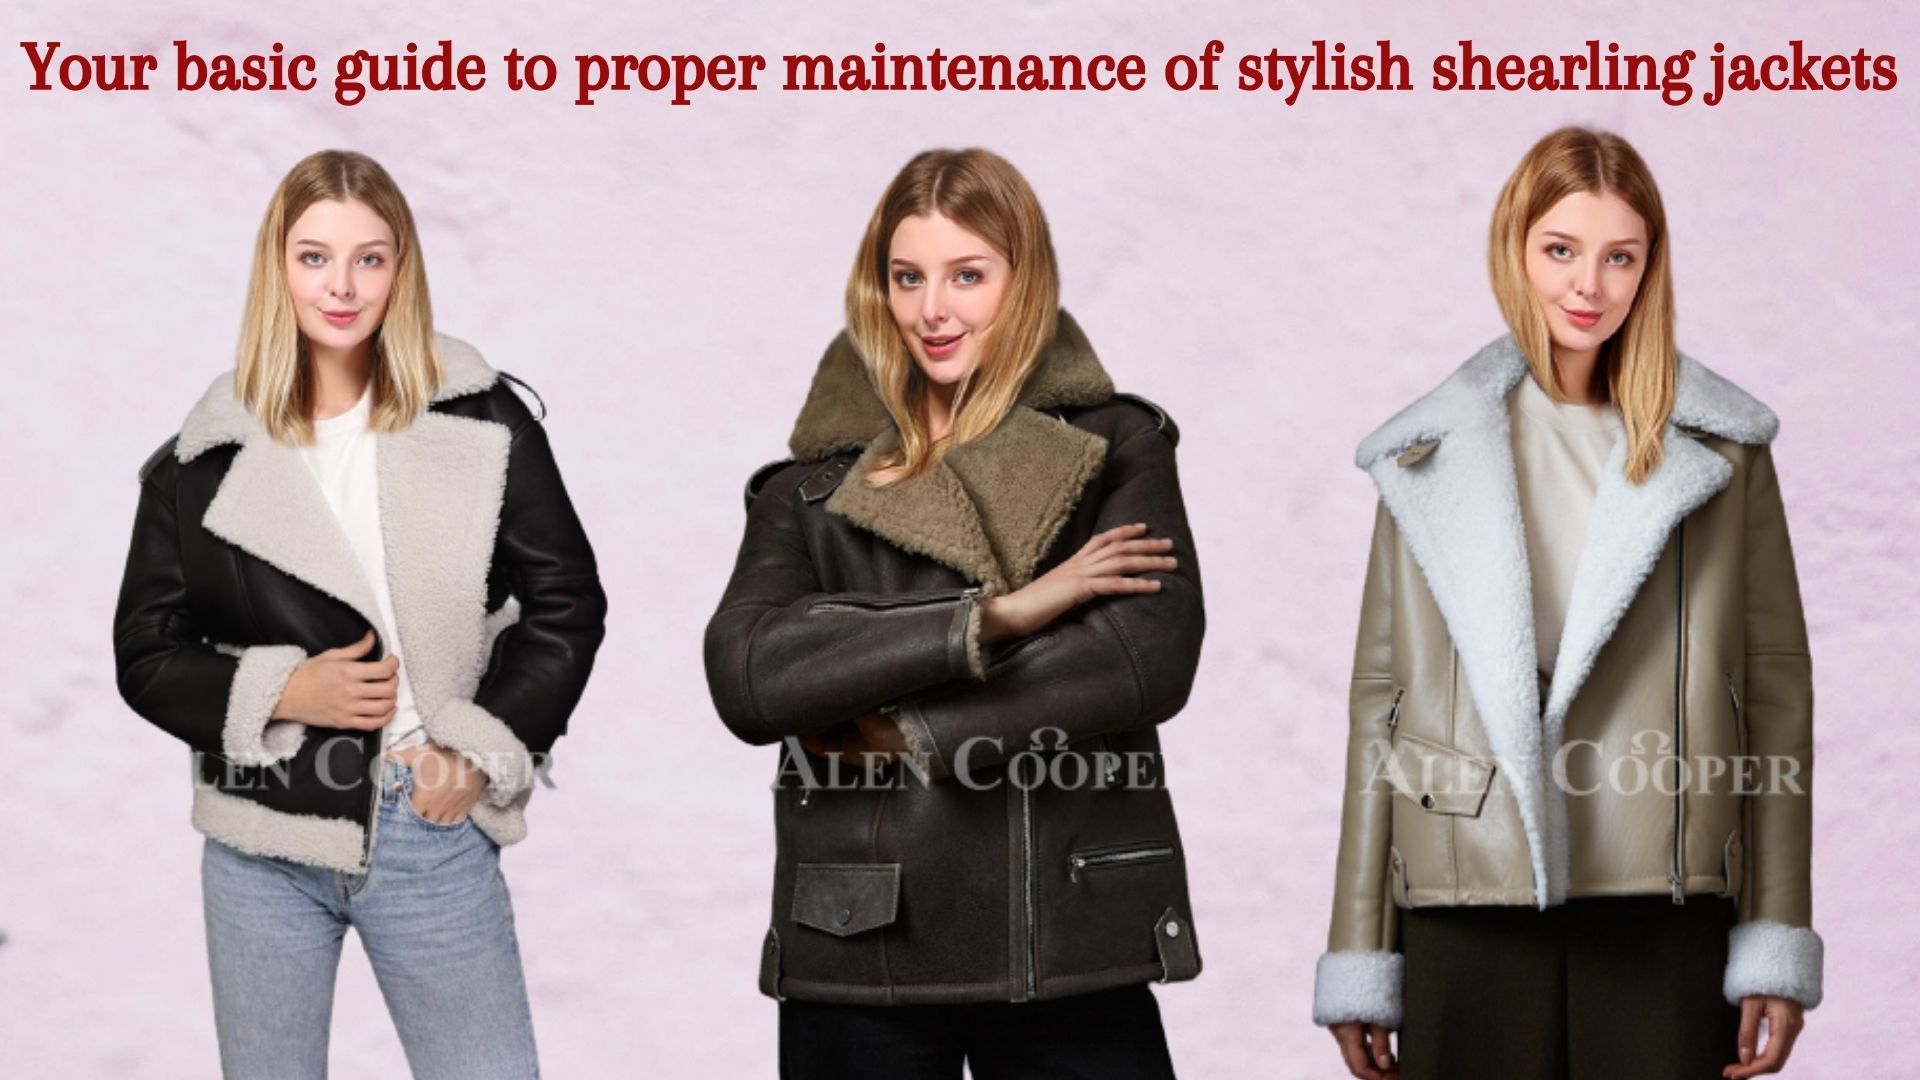 YOUR BASIC GUIDE TO PROPER MAINTENANCE OF STYLISH SHEARLING JACKETS